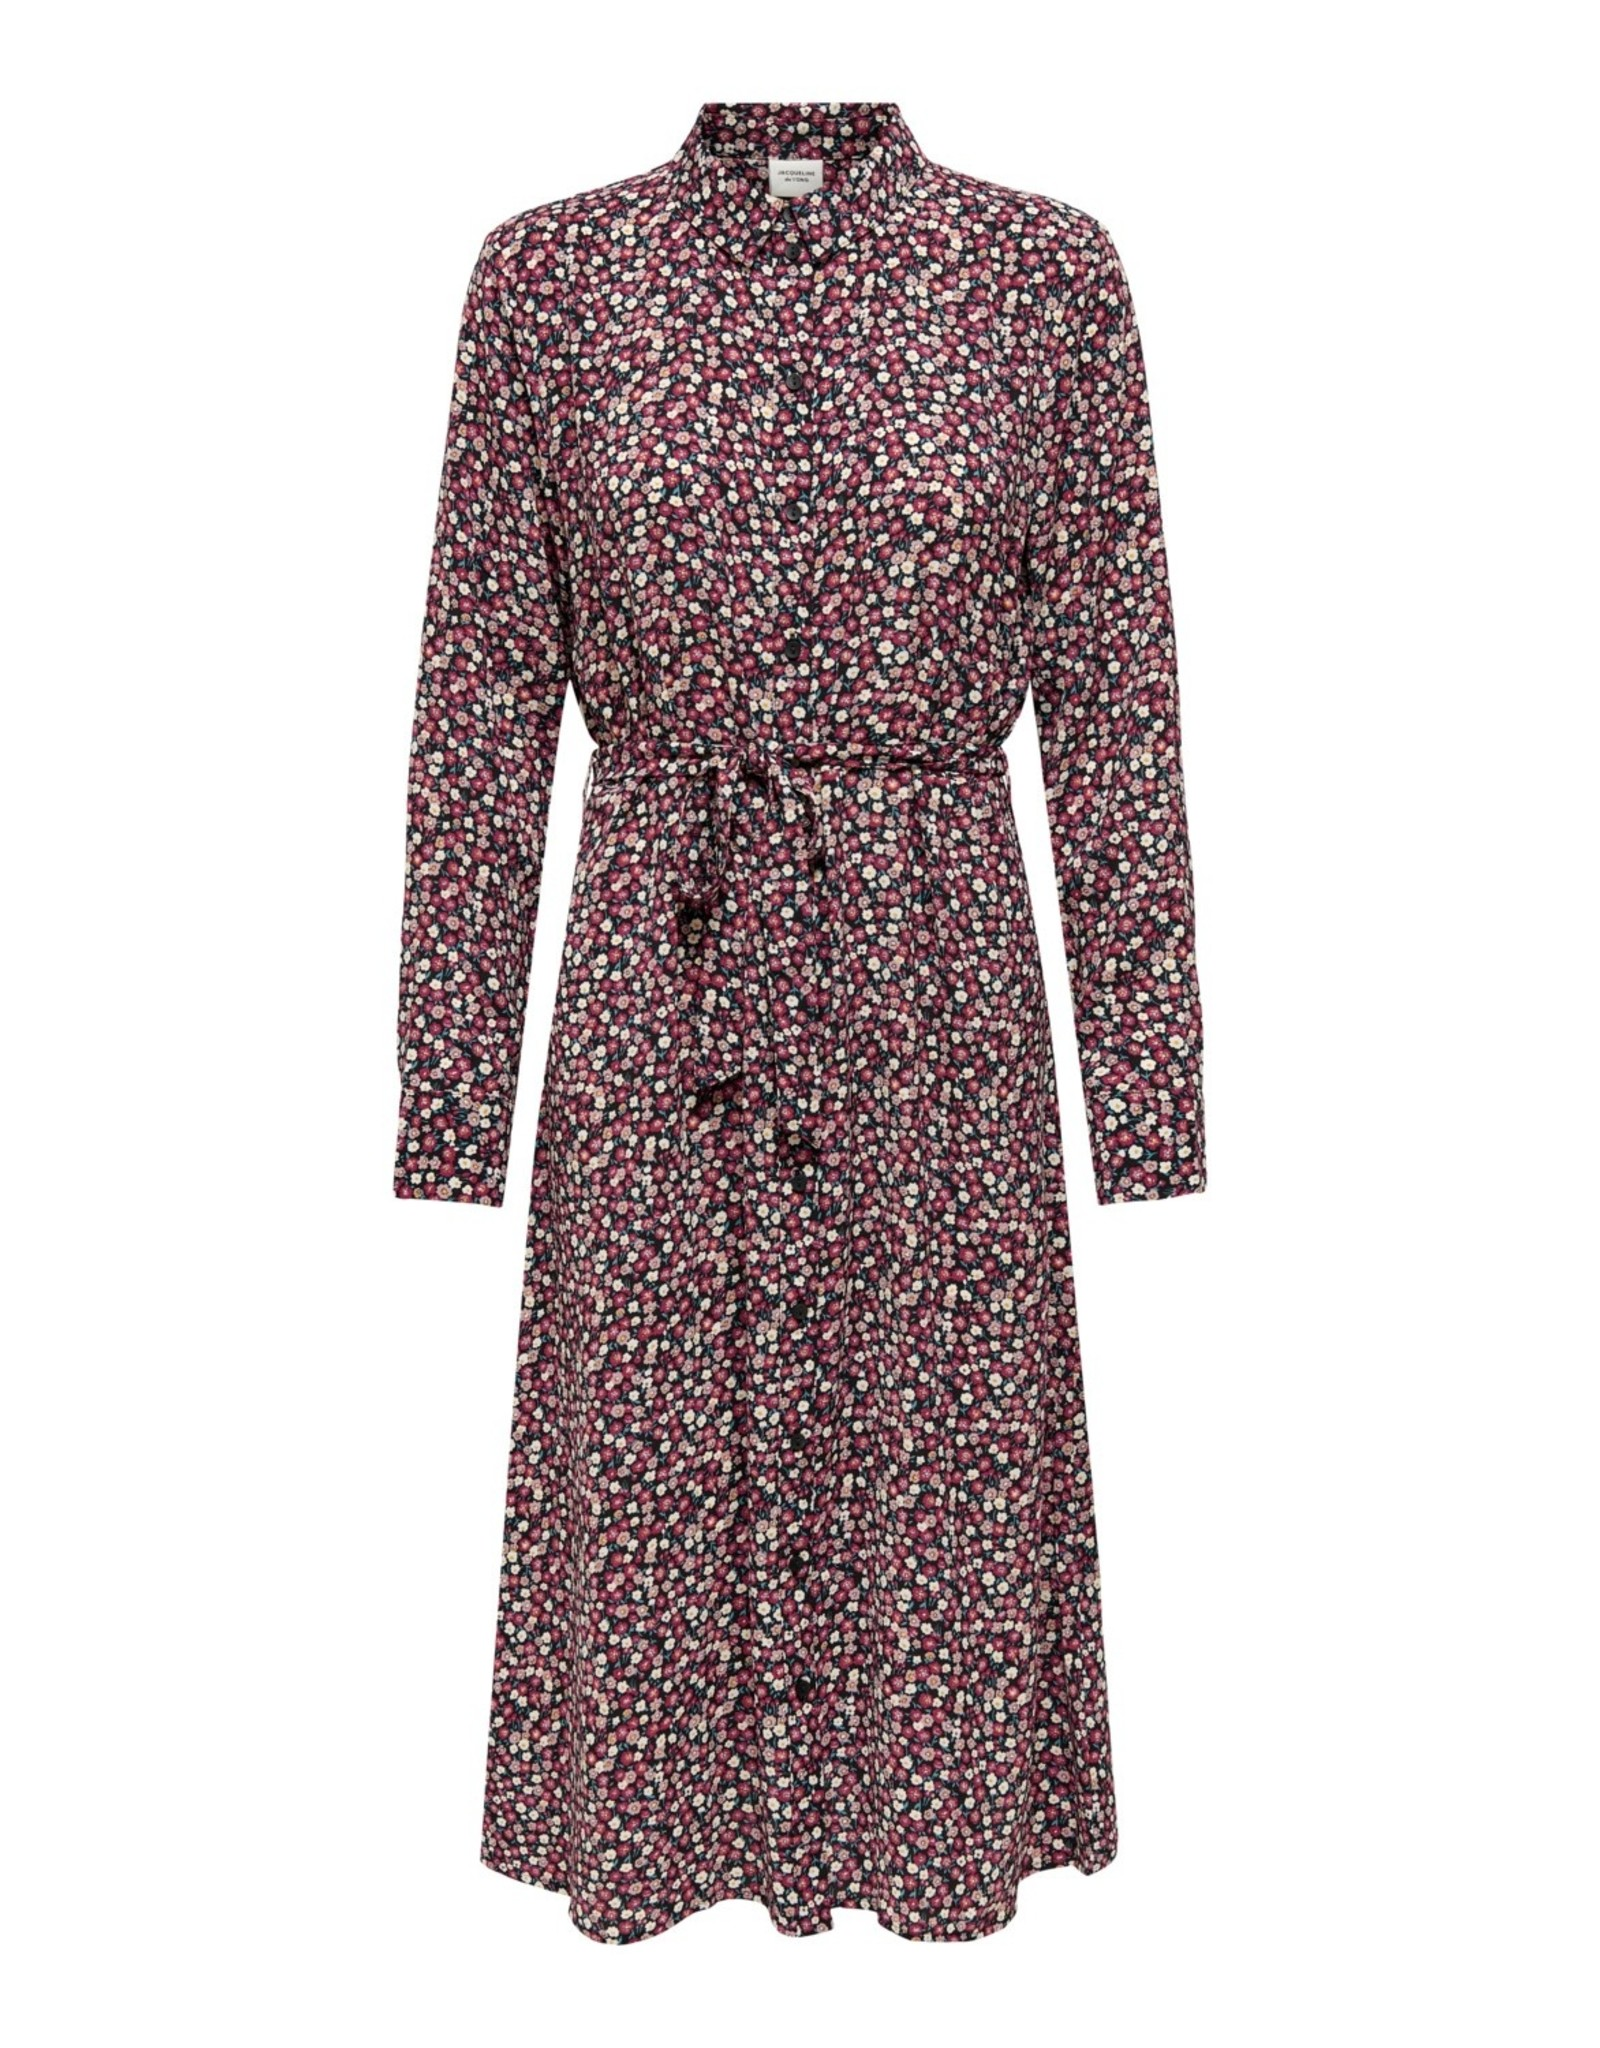 PIPER FLORAL DRESS PINK